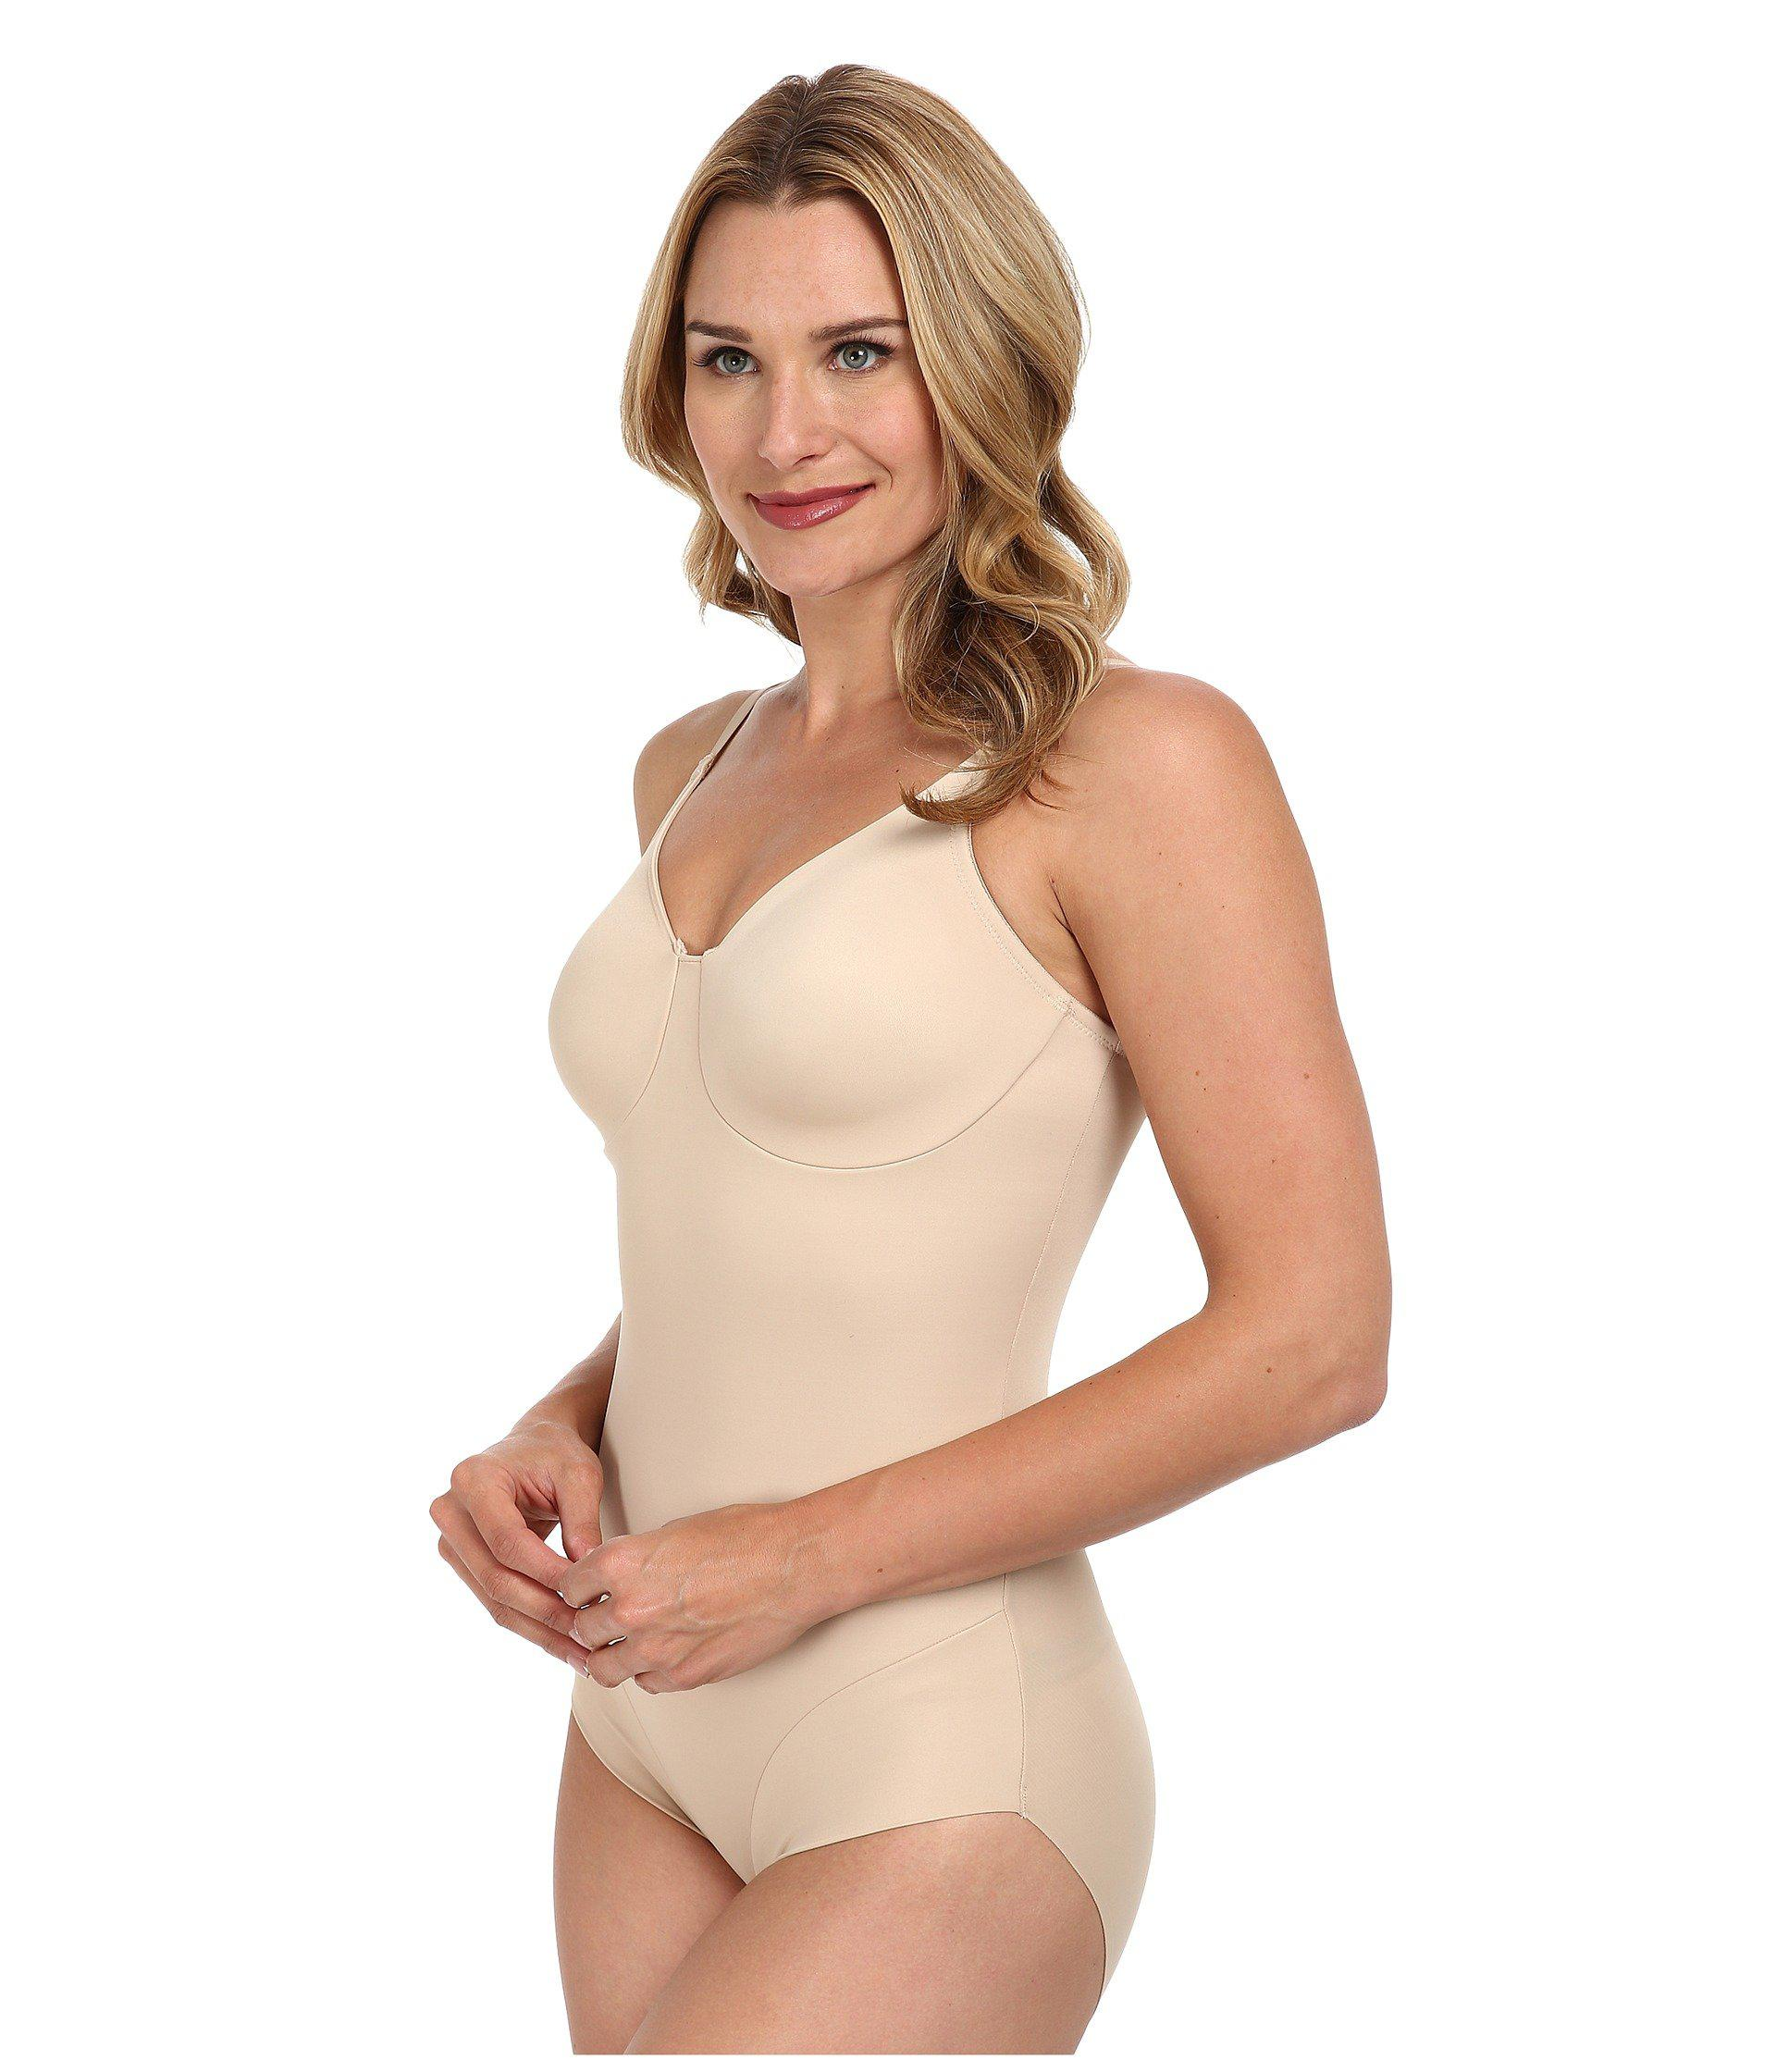 c4dc5b7b6e9 Miraclesuit Extra Firm Comfort Leg Smooth Molded Cup Bodybriefer (black)  Women s Bra in Natural - Lyst